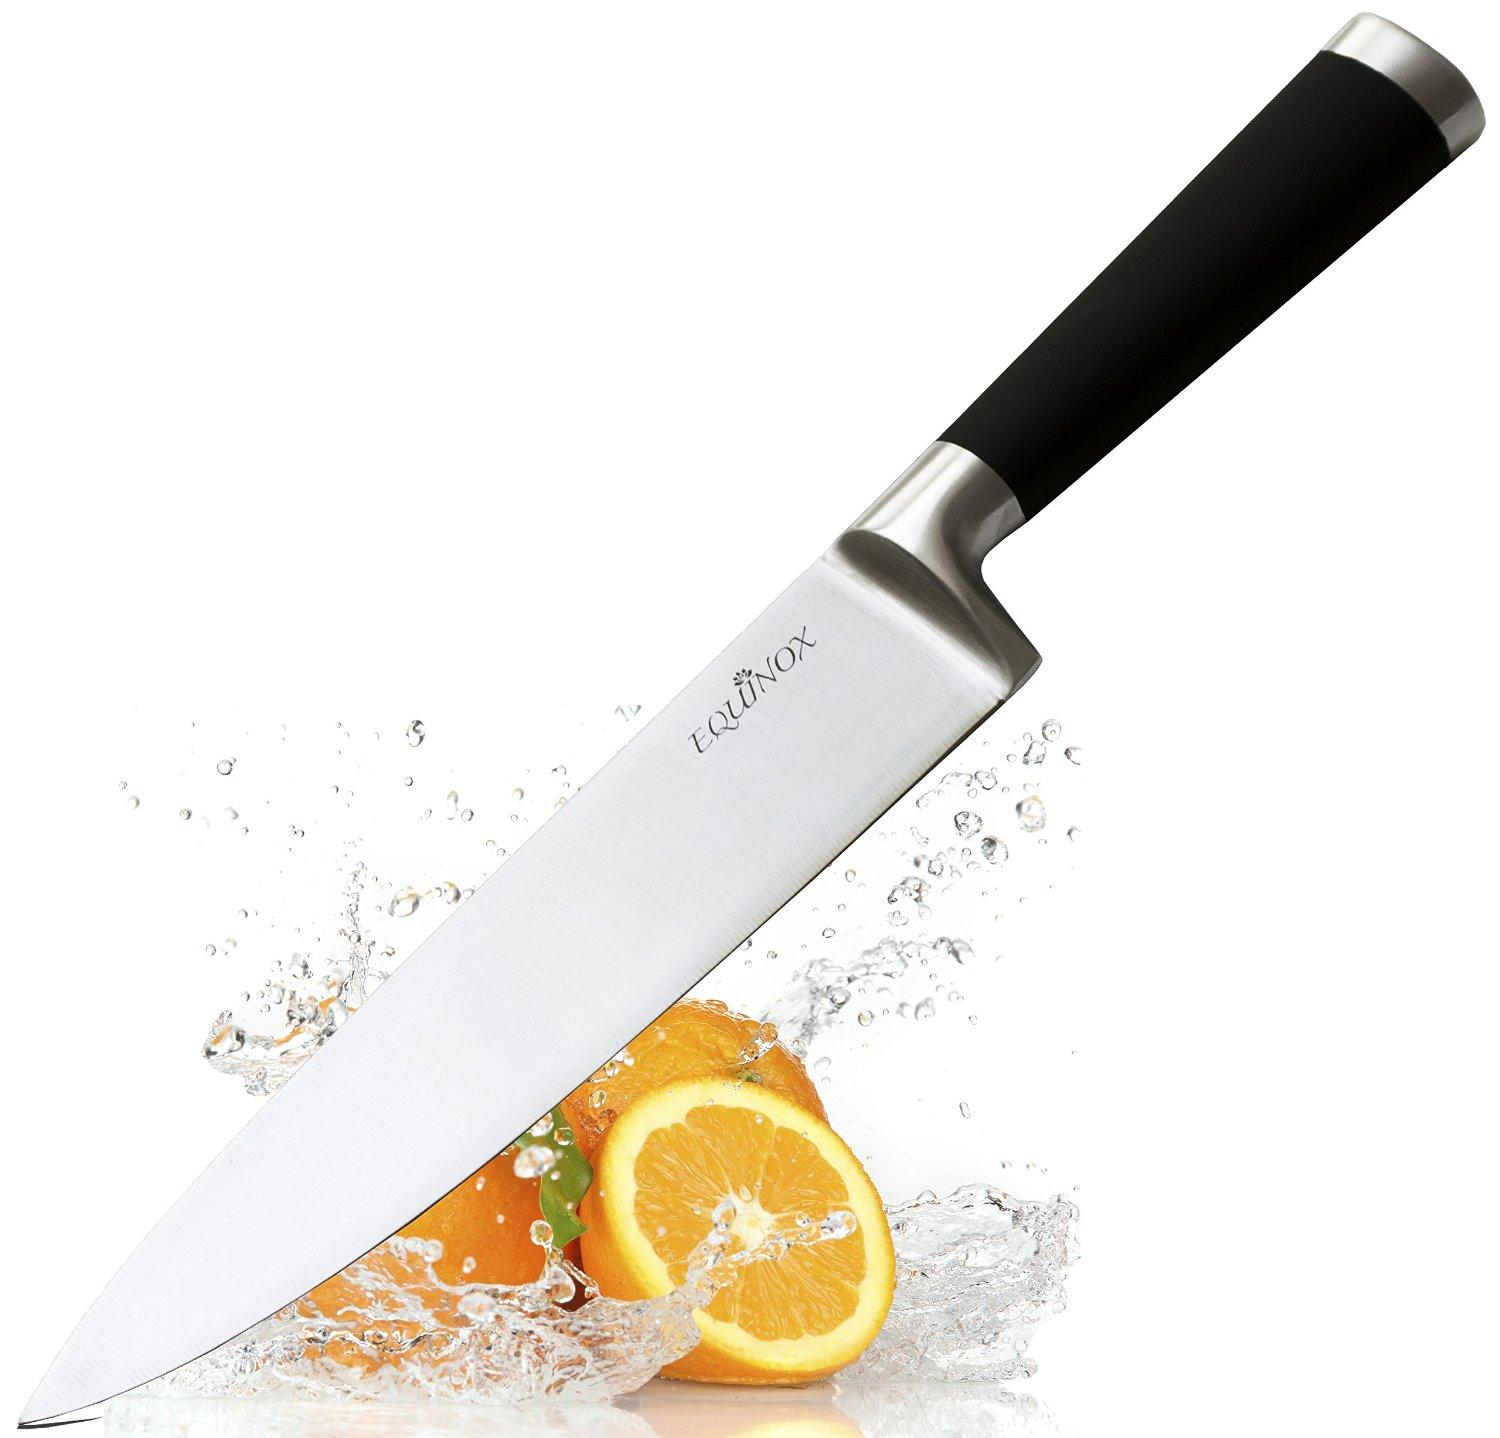 Equinox Professional Chef's Knife Review